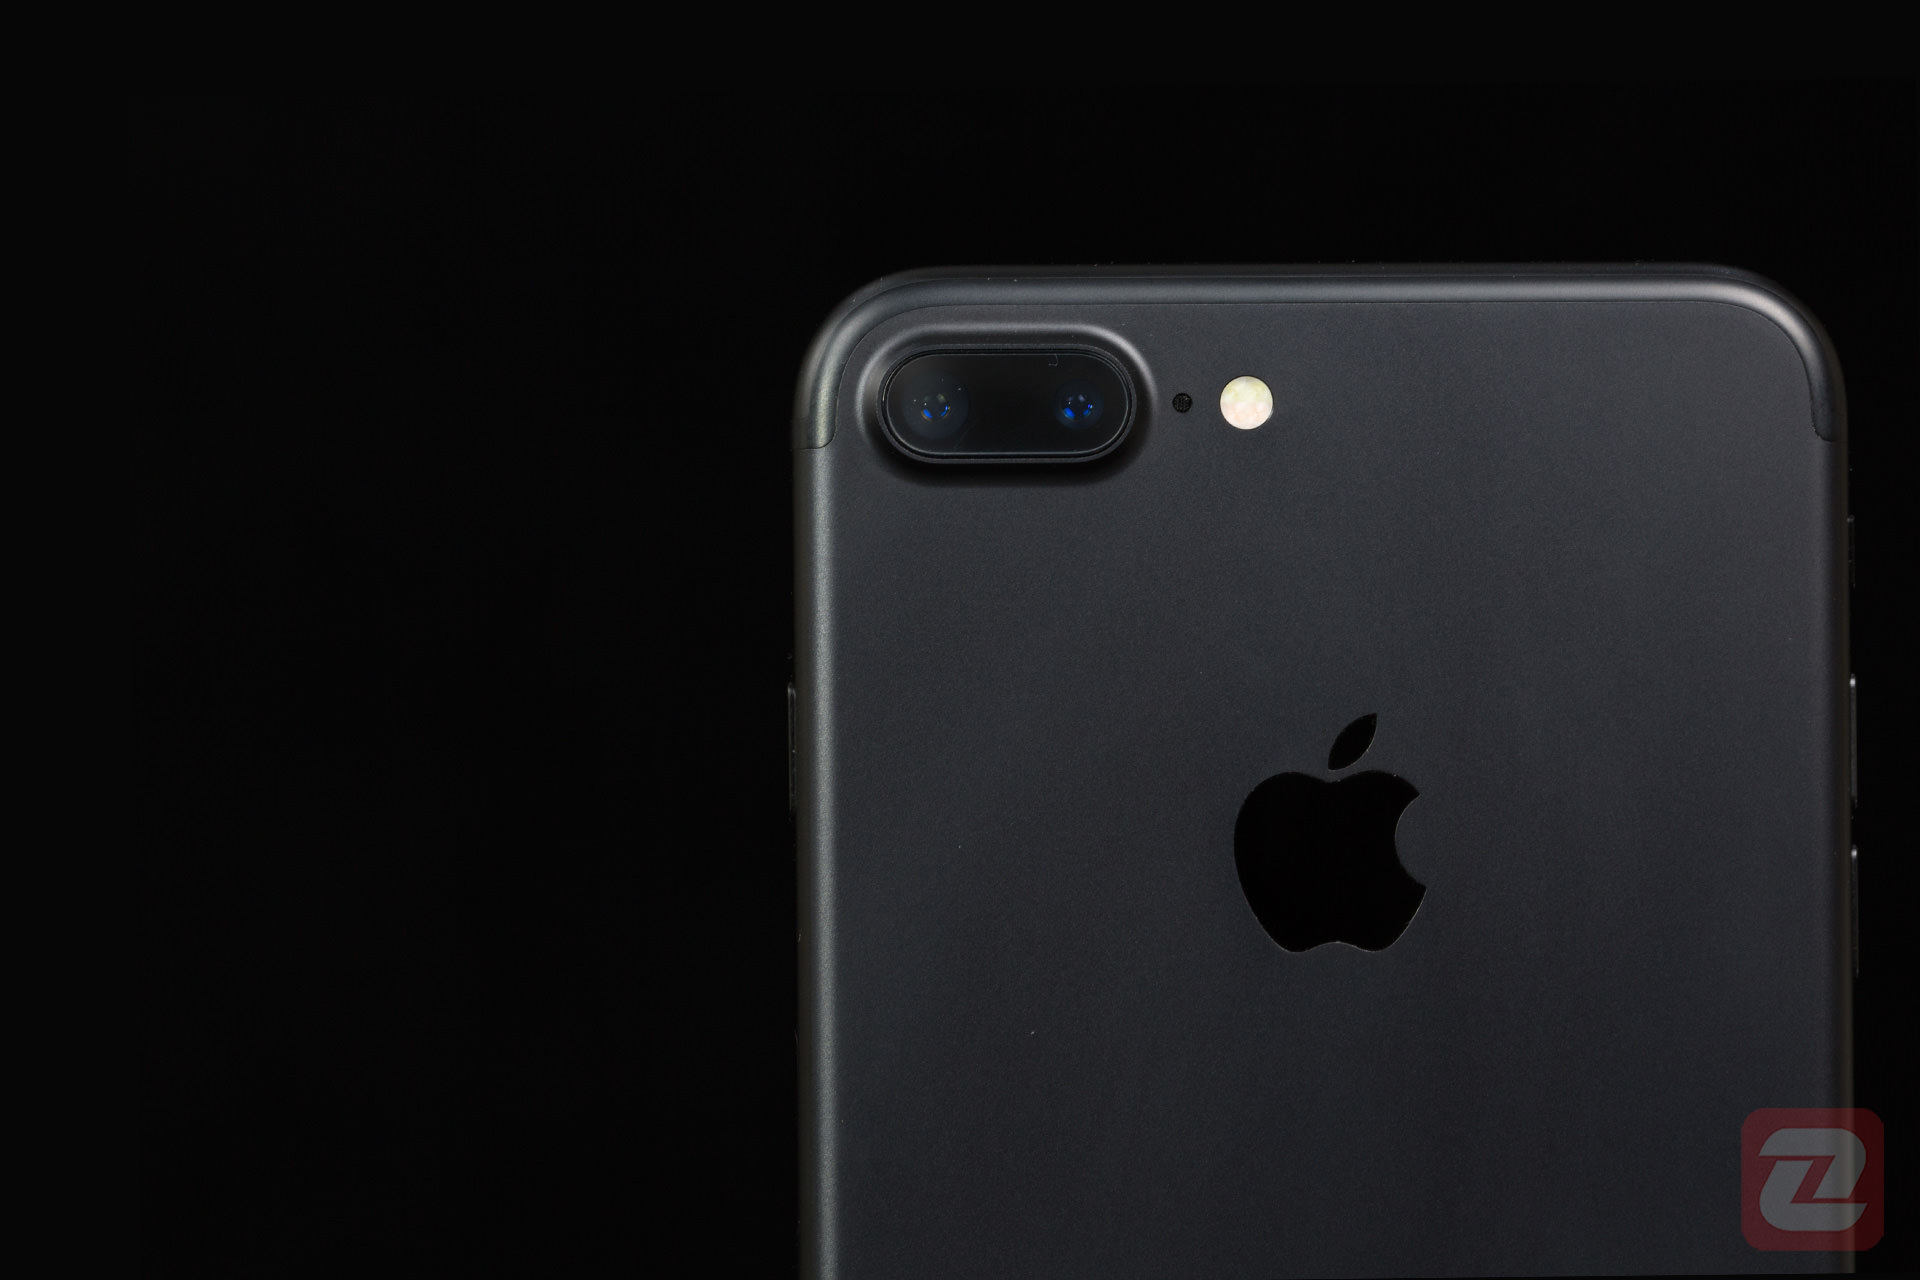 آیفون 7 پلاس / iPhone 7 Plus